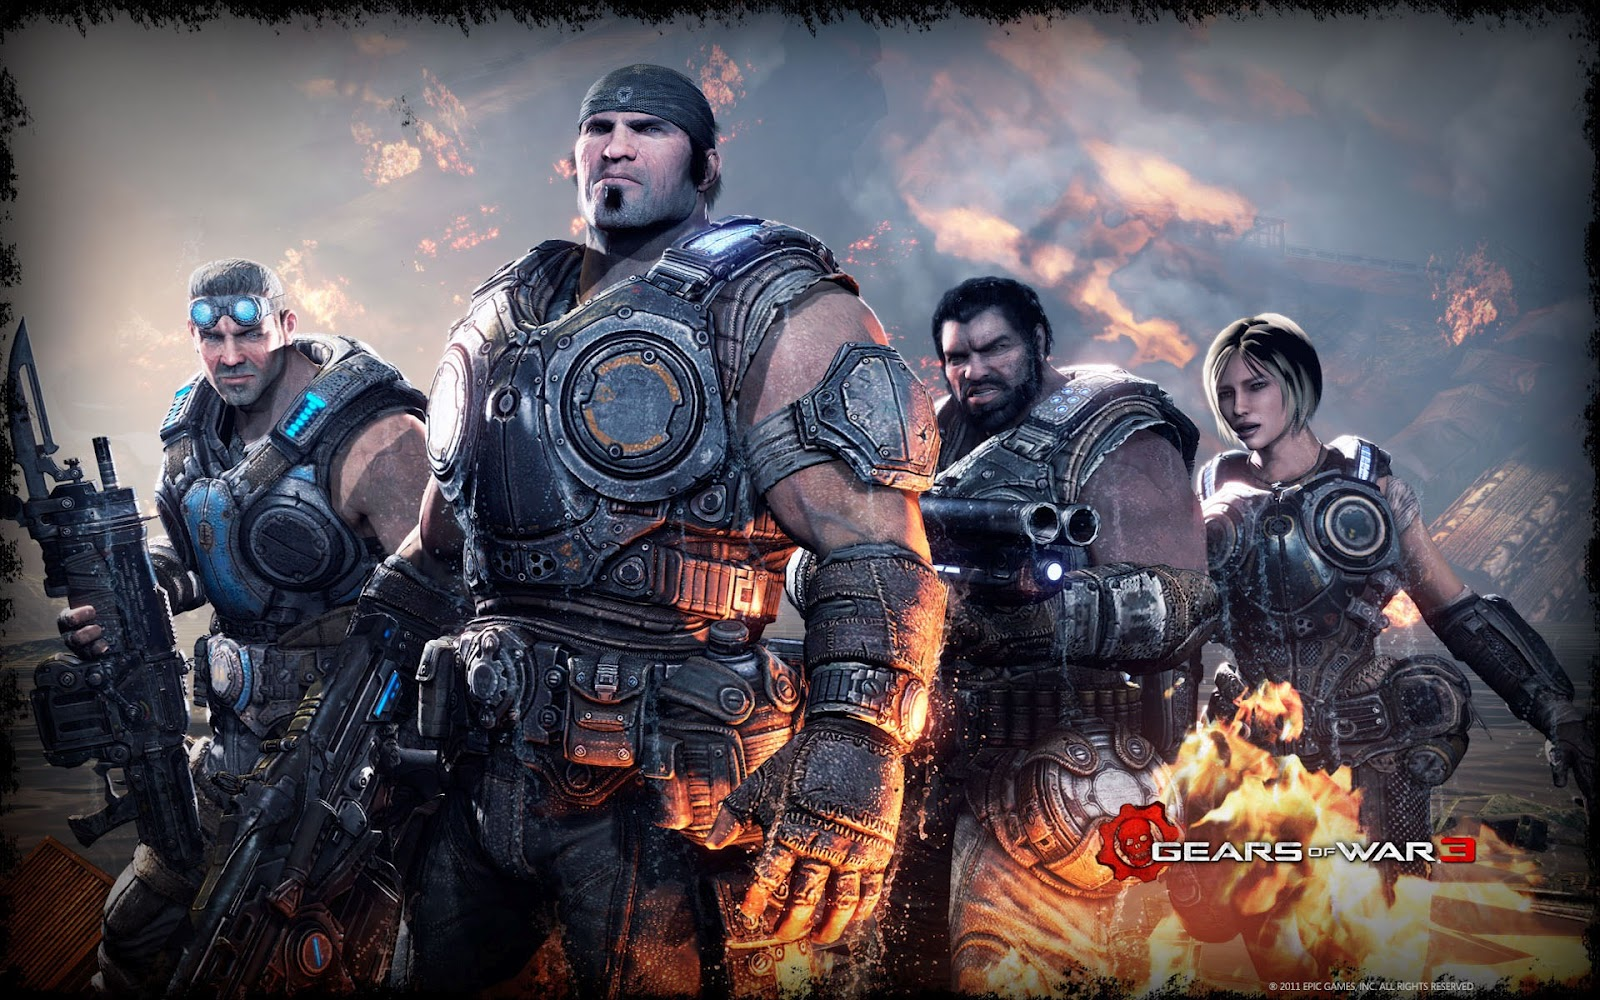 gears of war ultimate edition wallpaper iphone